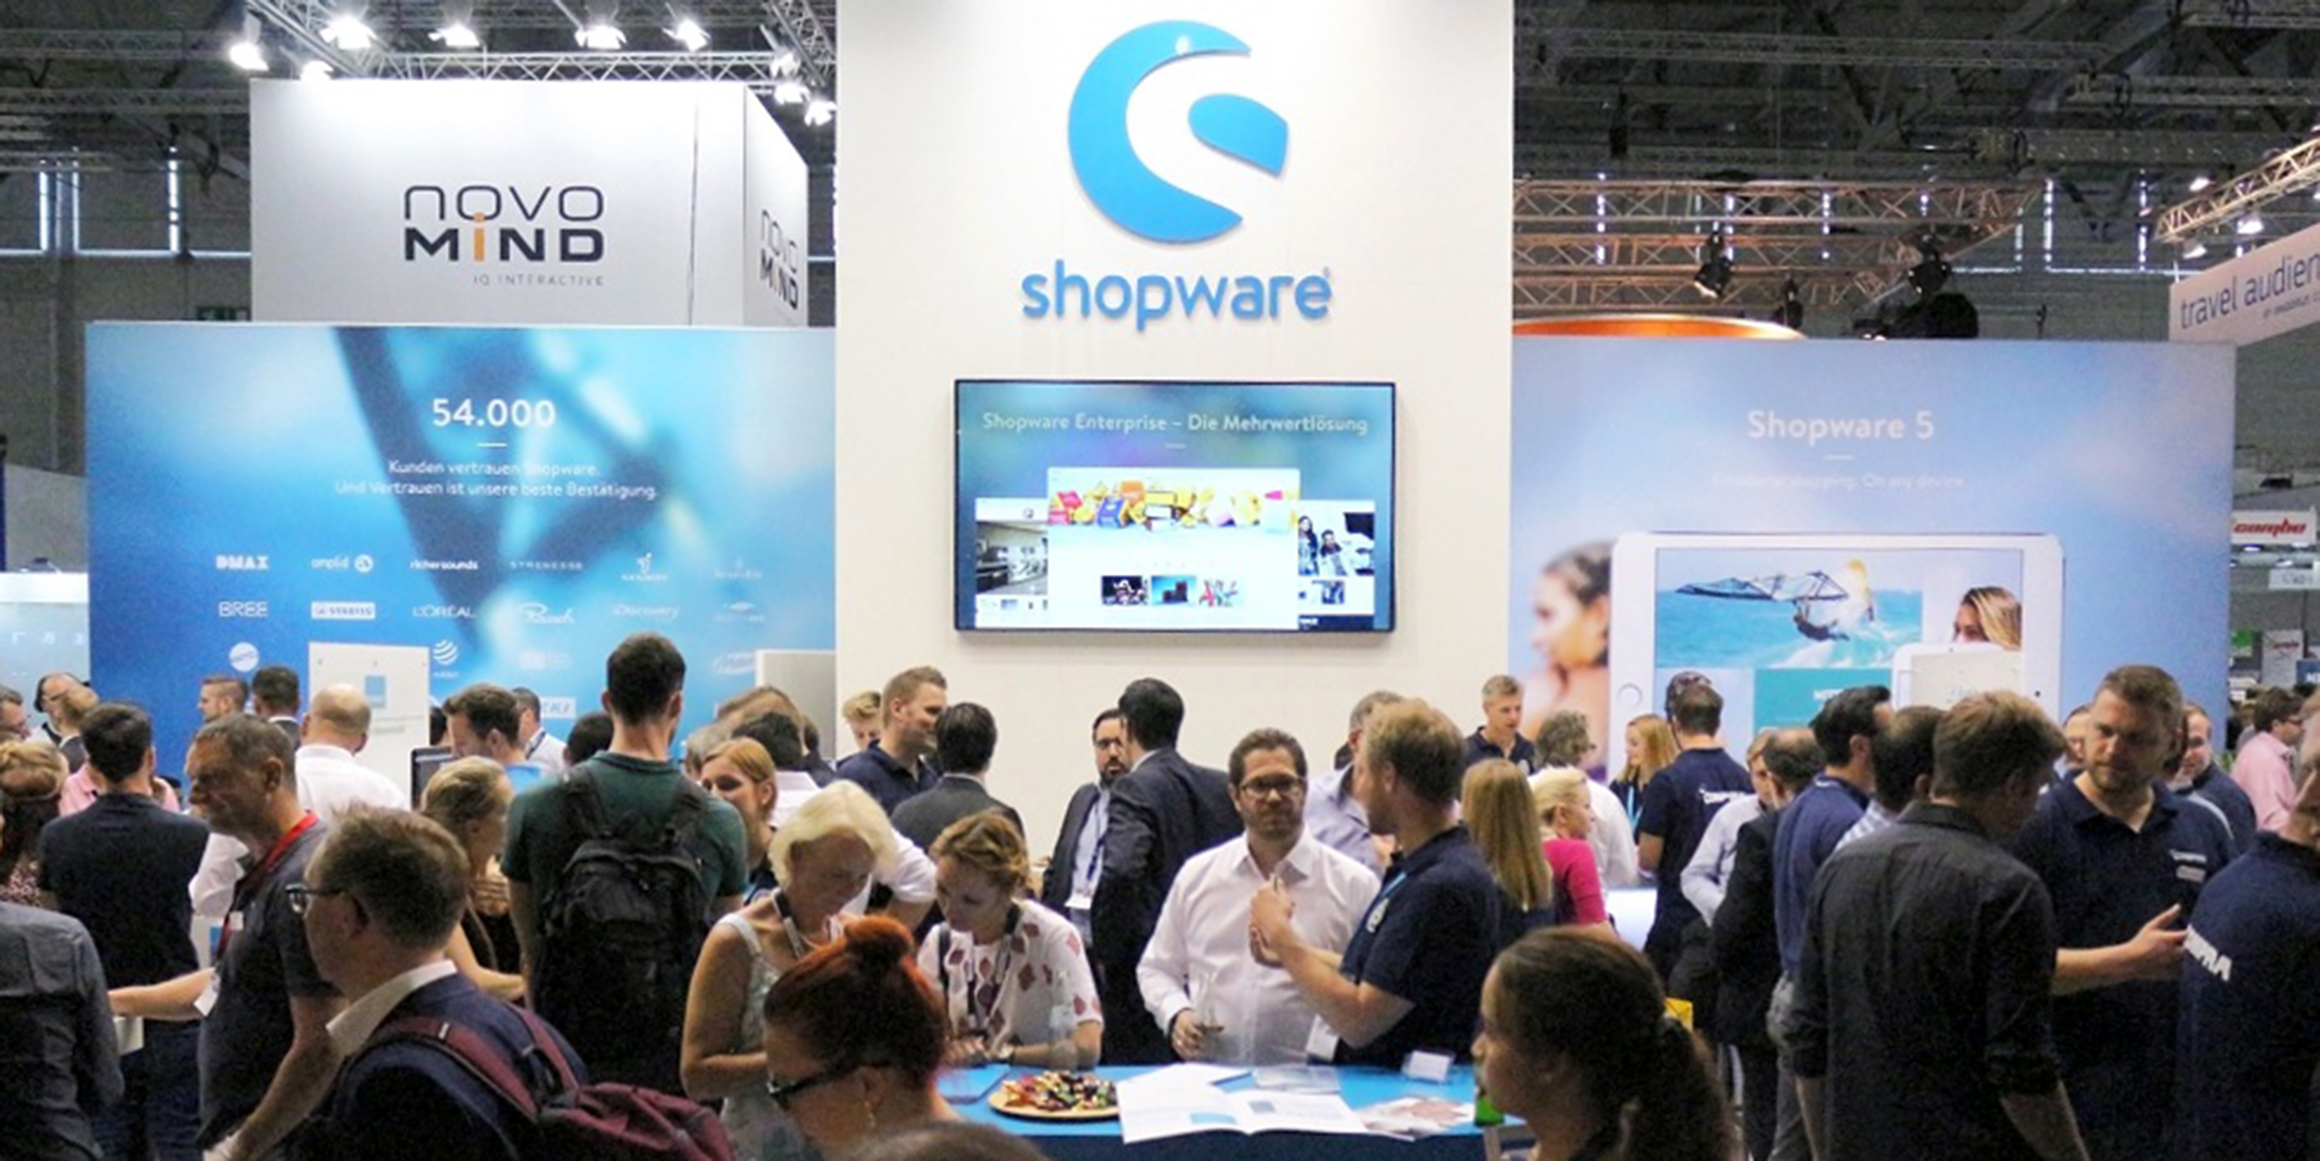 Shopware mit 10 Partnern am Start bei der Internet World Messe 2017